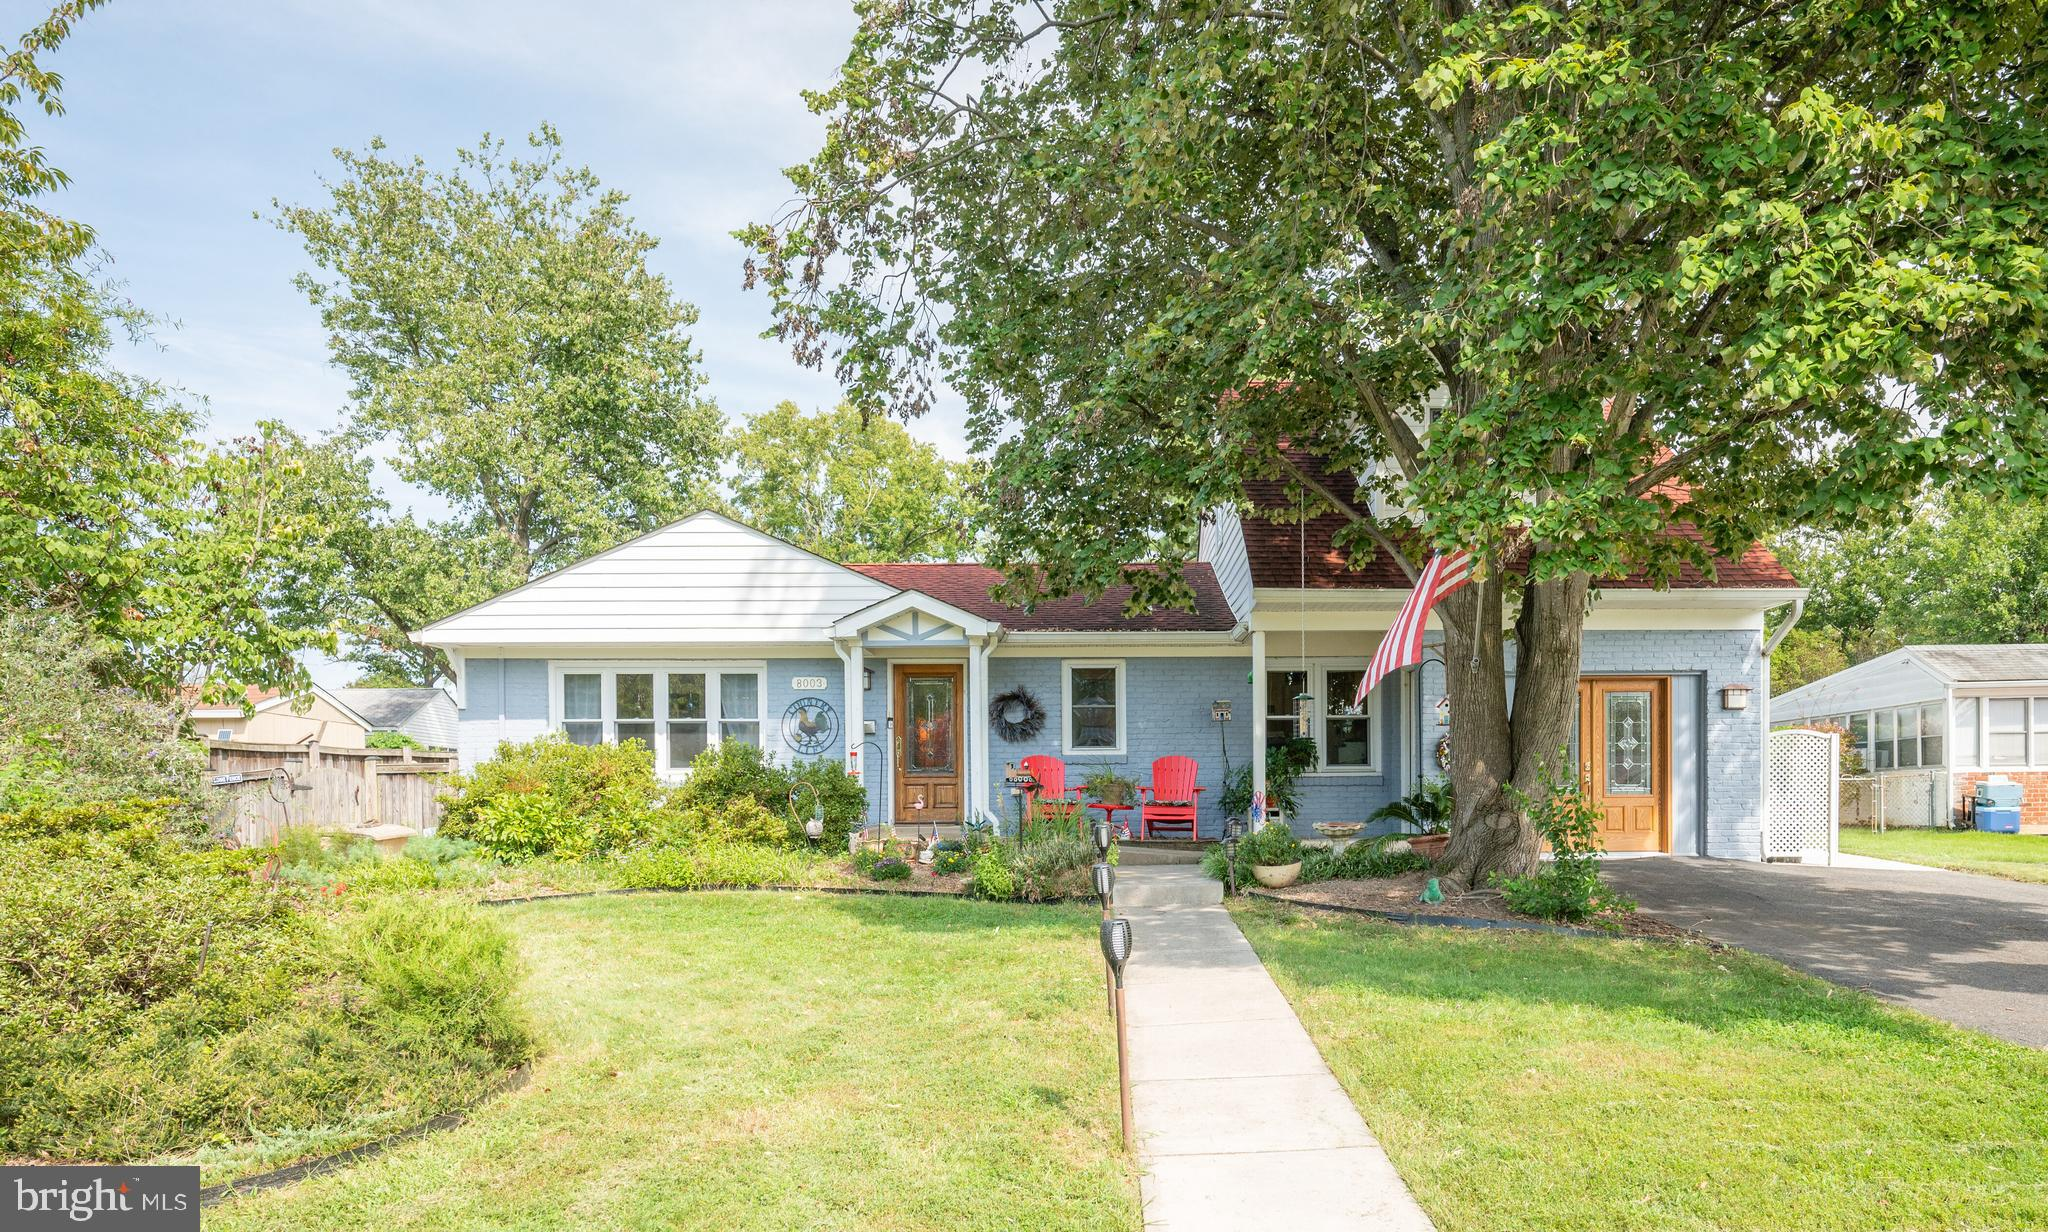 OPEN SUN, 9.19, 2-4 p.m.  A Hollin Hall gem with so many lifestyle possibilities. Long time owners m